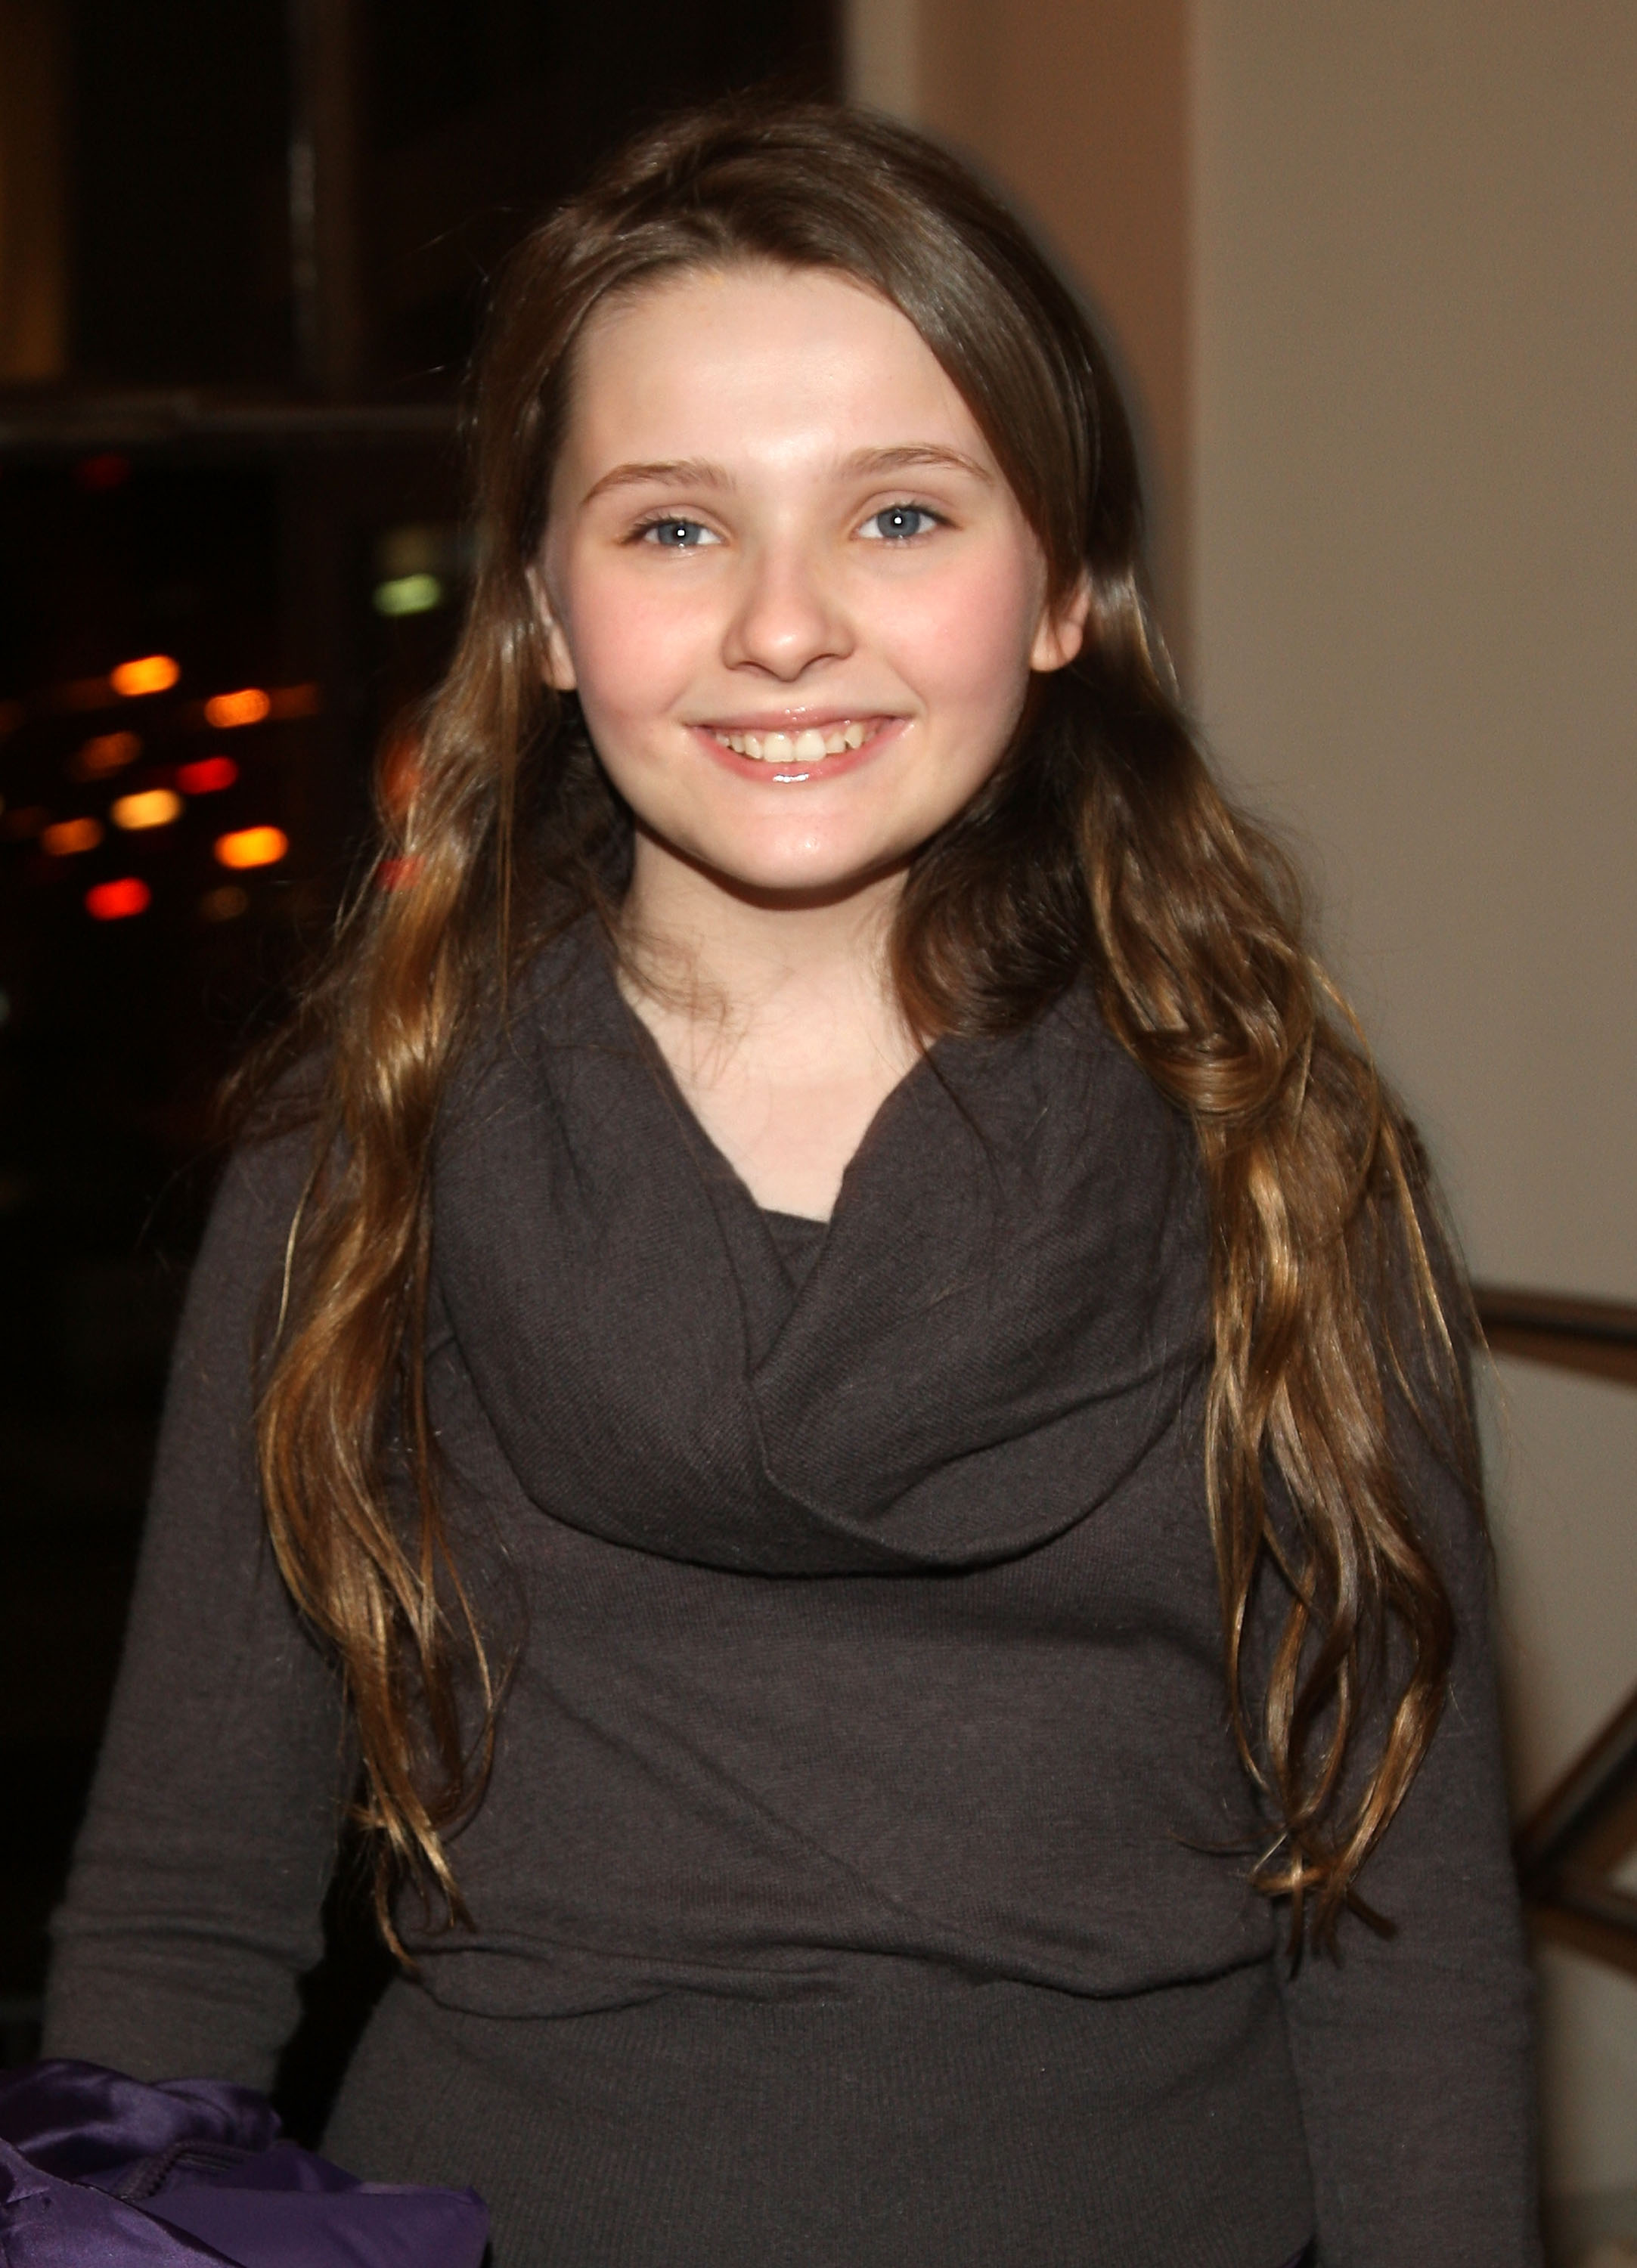 Ass Abigail Breslin naked (46 photos), Pussy, Leaked, Instagram, braless 2006